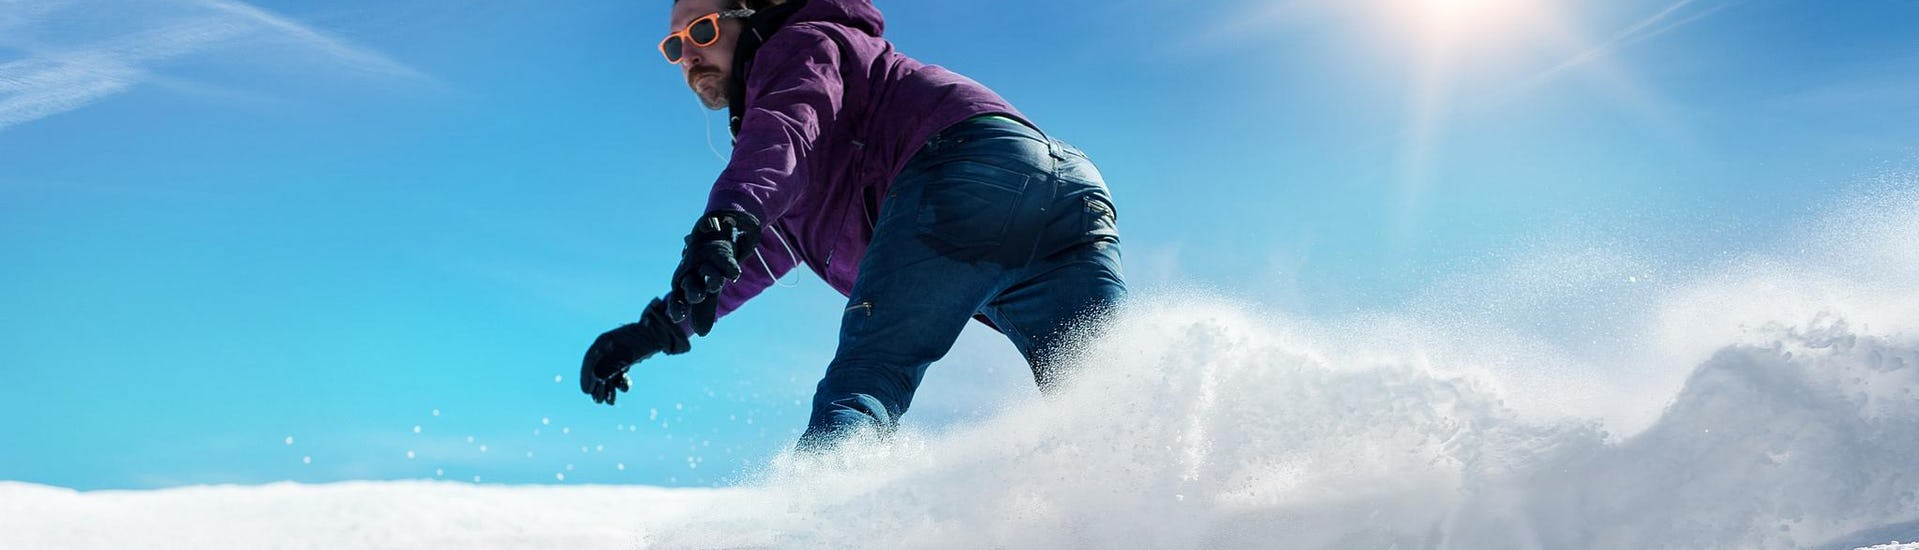 Snowboard Instructor Private - Holidays - All Levels